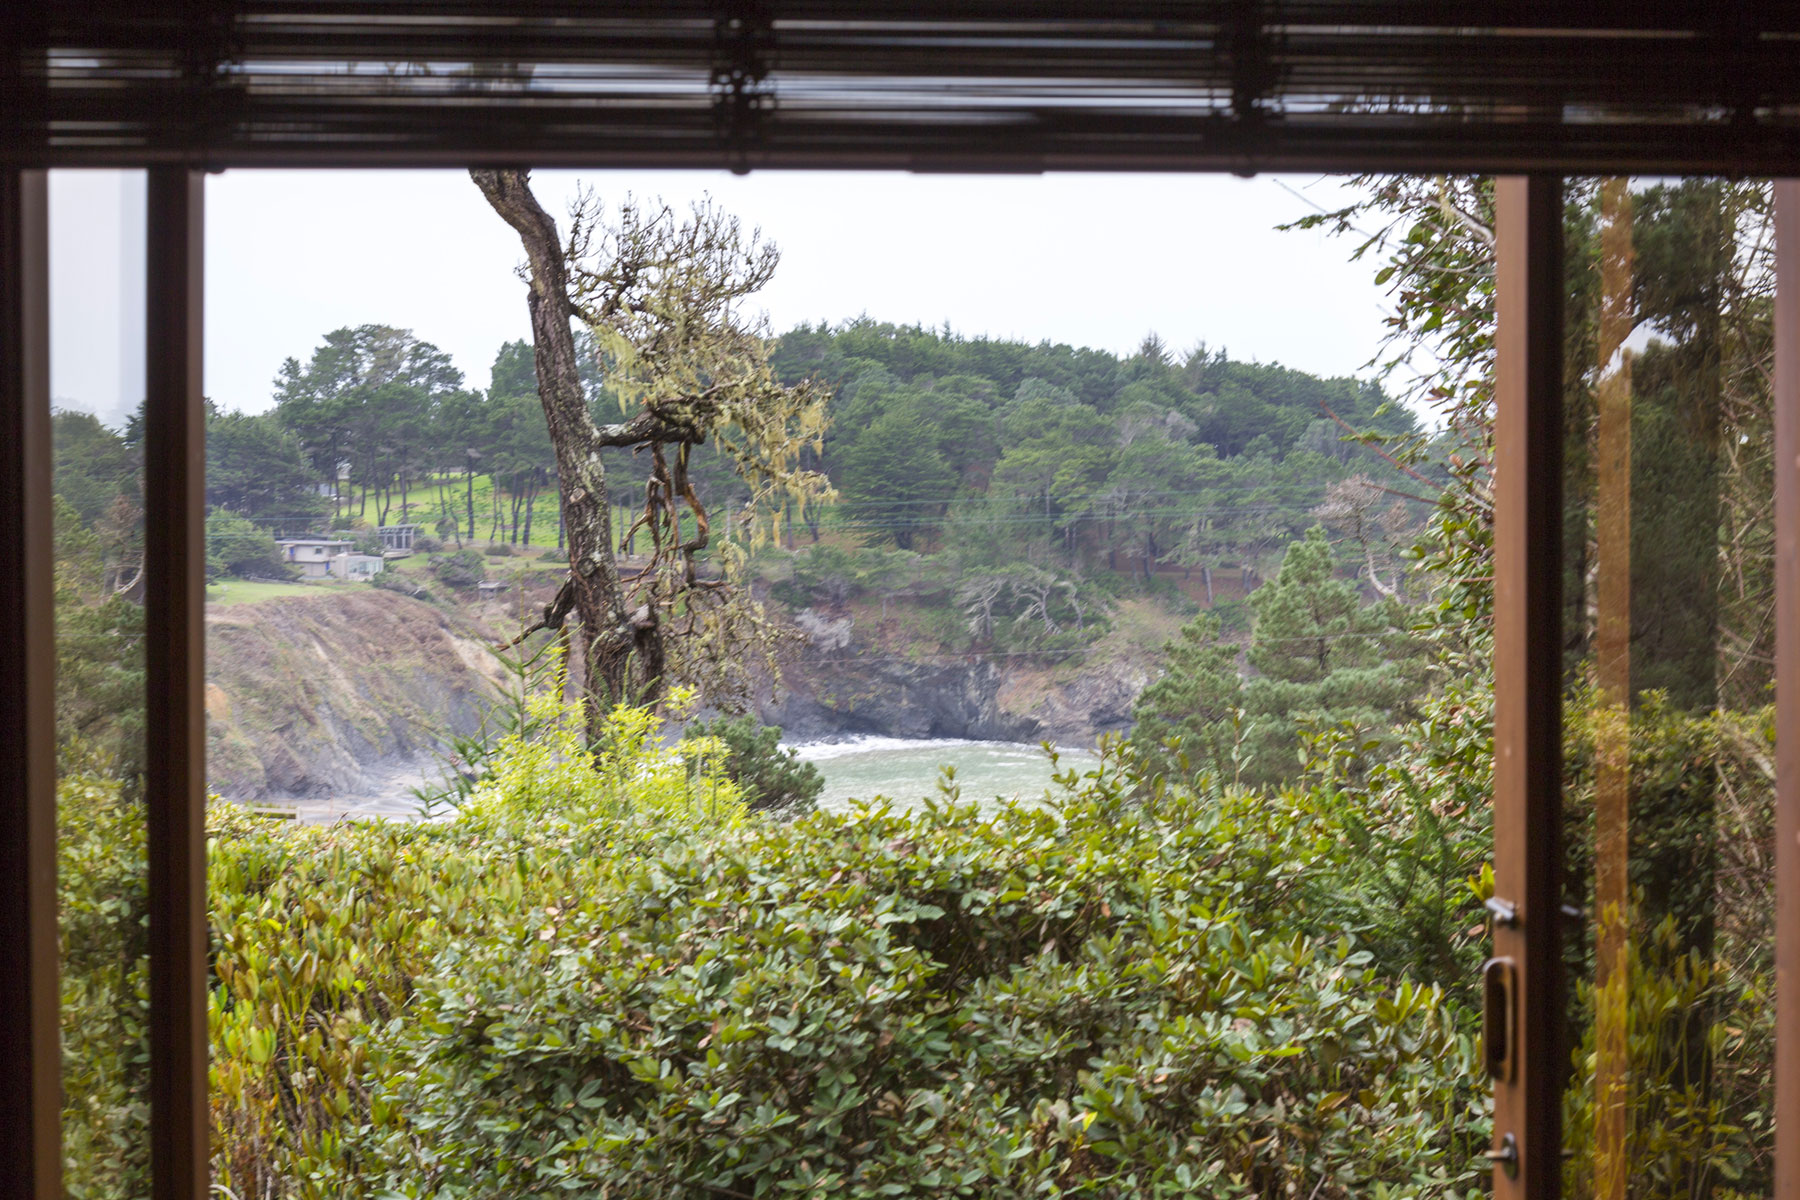 The Madrone room window looks out to a view of the ocean cove